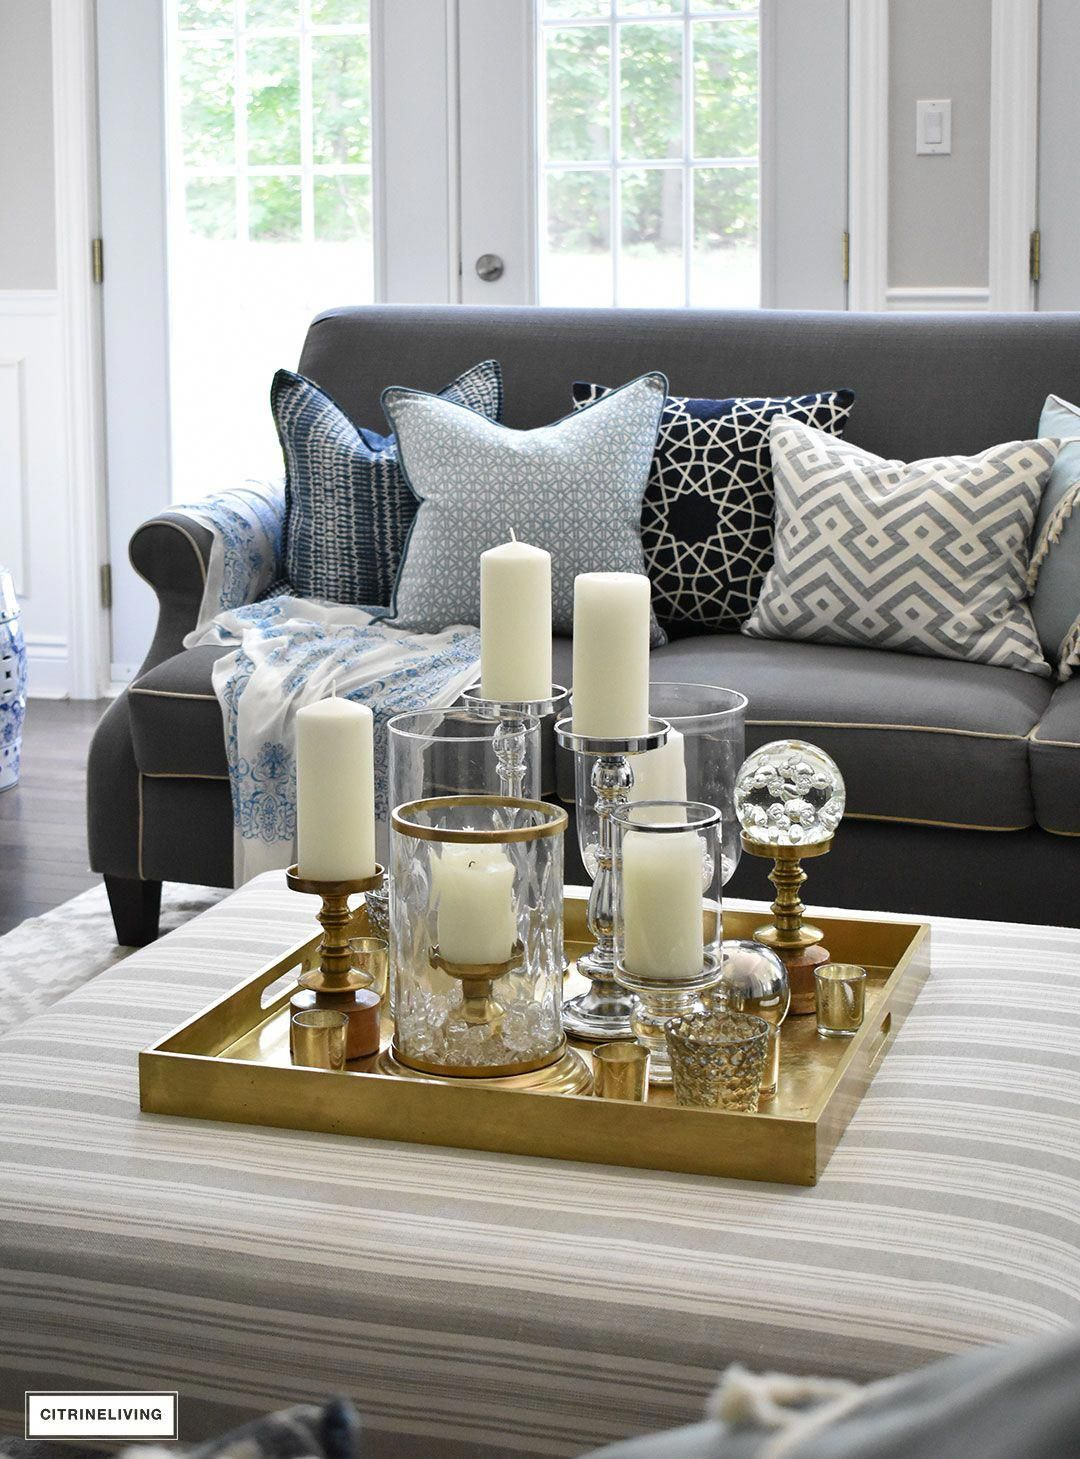 Make A Visual Statement With A Clustered Grouping Of Metal And Glass Candleholders In Varying Heig Coffee Table Decor Tray Coffee Table Table Decor Living Room [ 1459 x 1080 Pixel ]